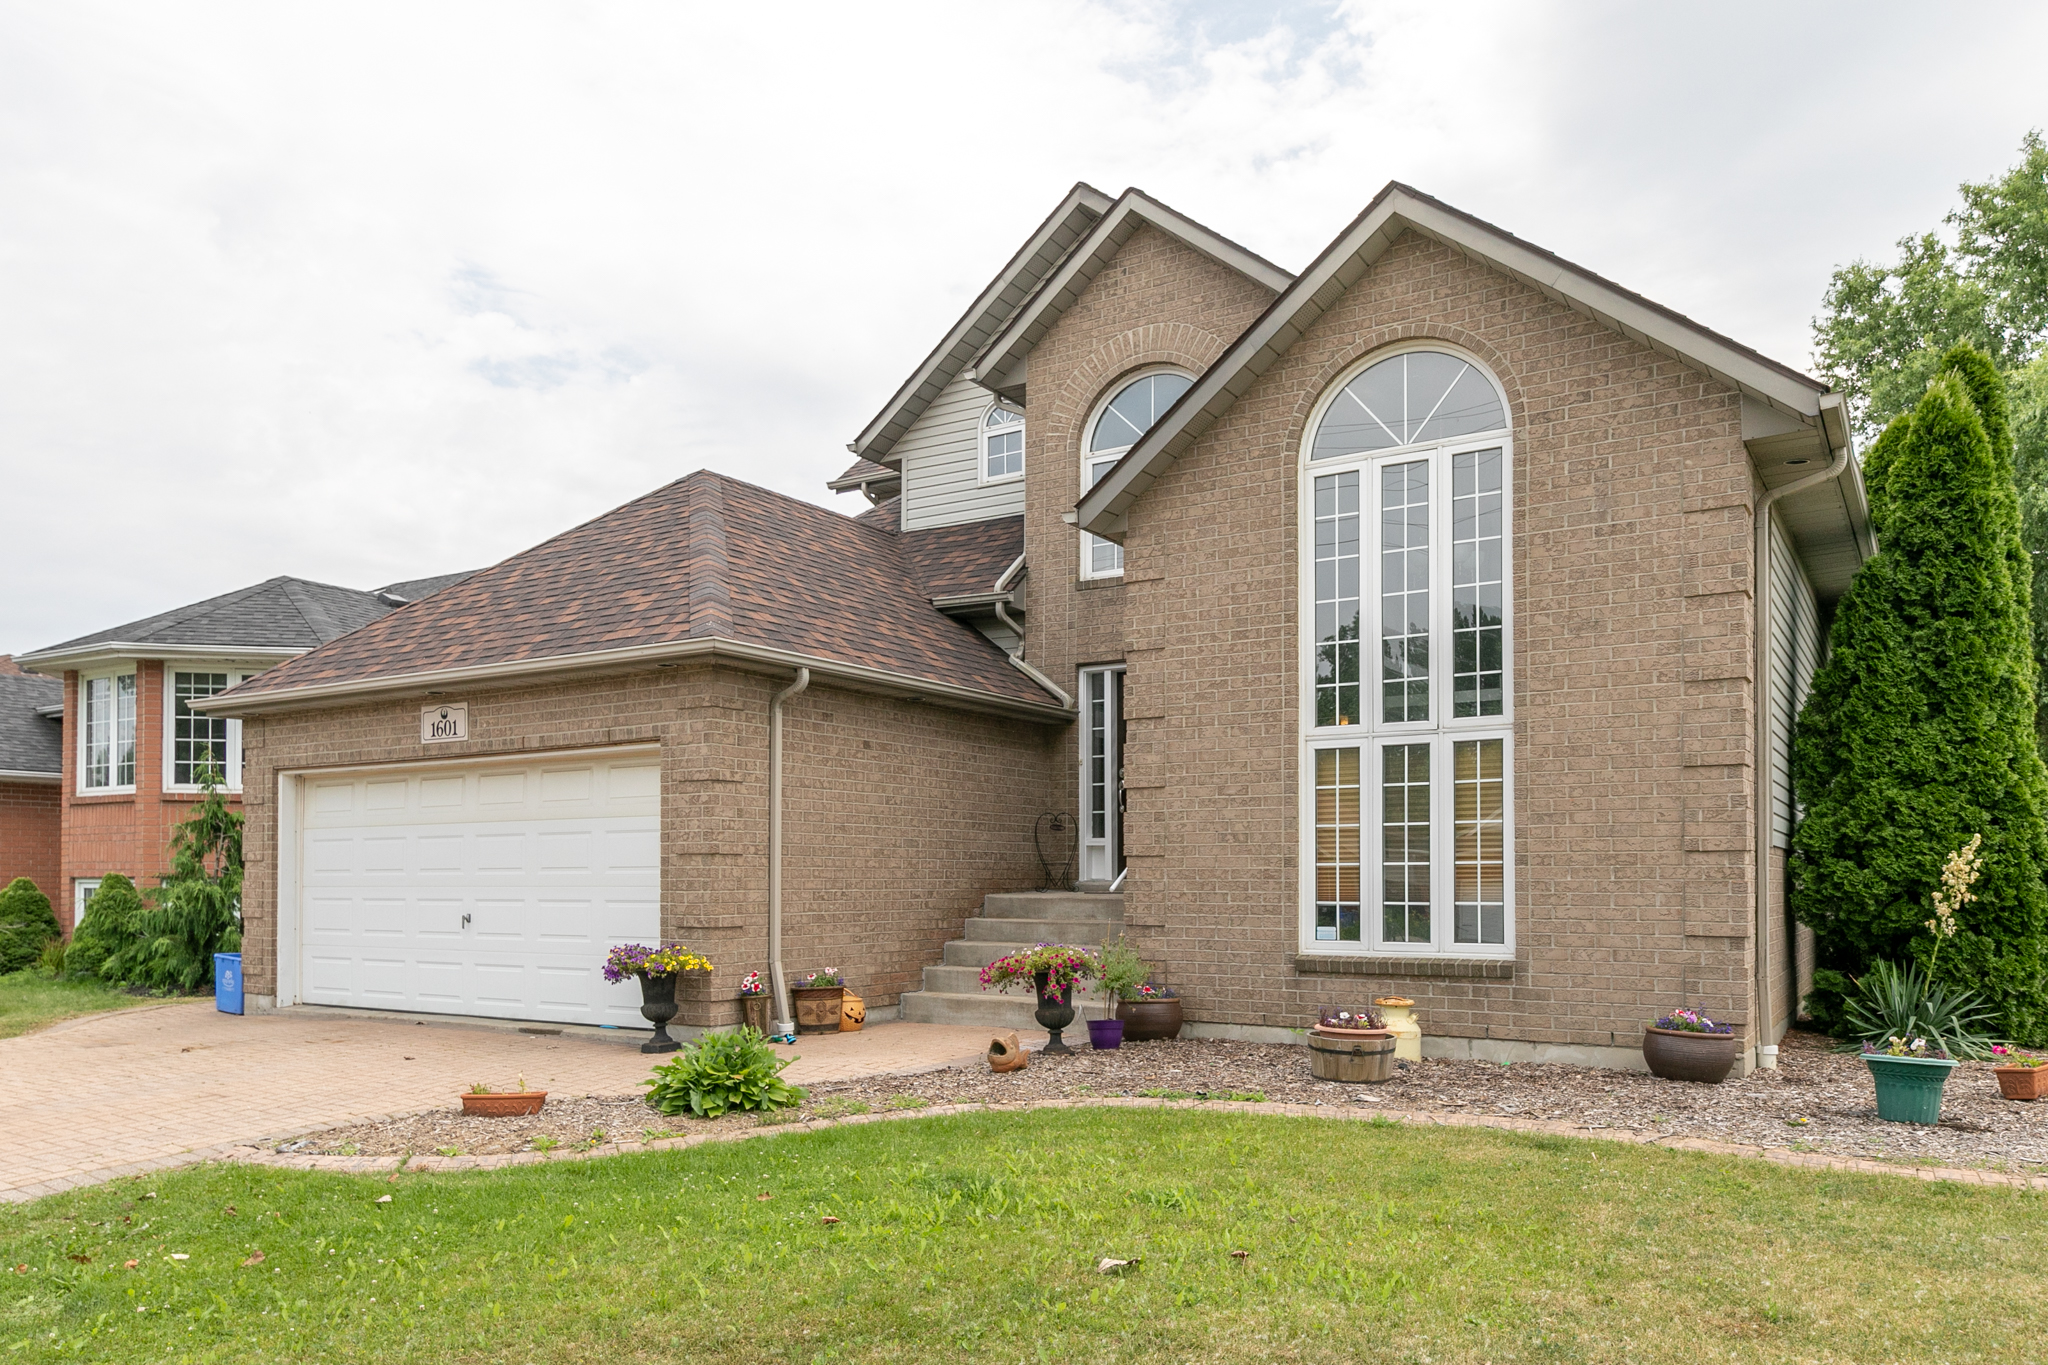 1601 Maple, LaSalle | 4 Beds | 3 Baths - SOLD